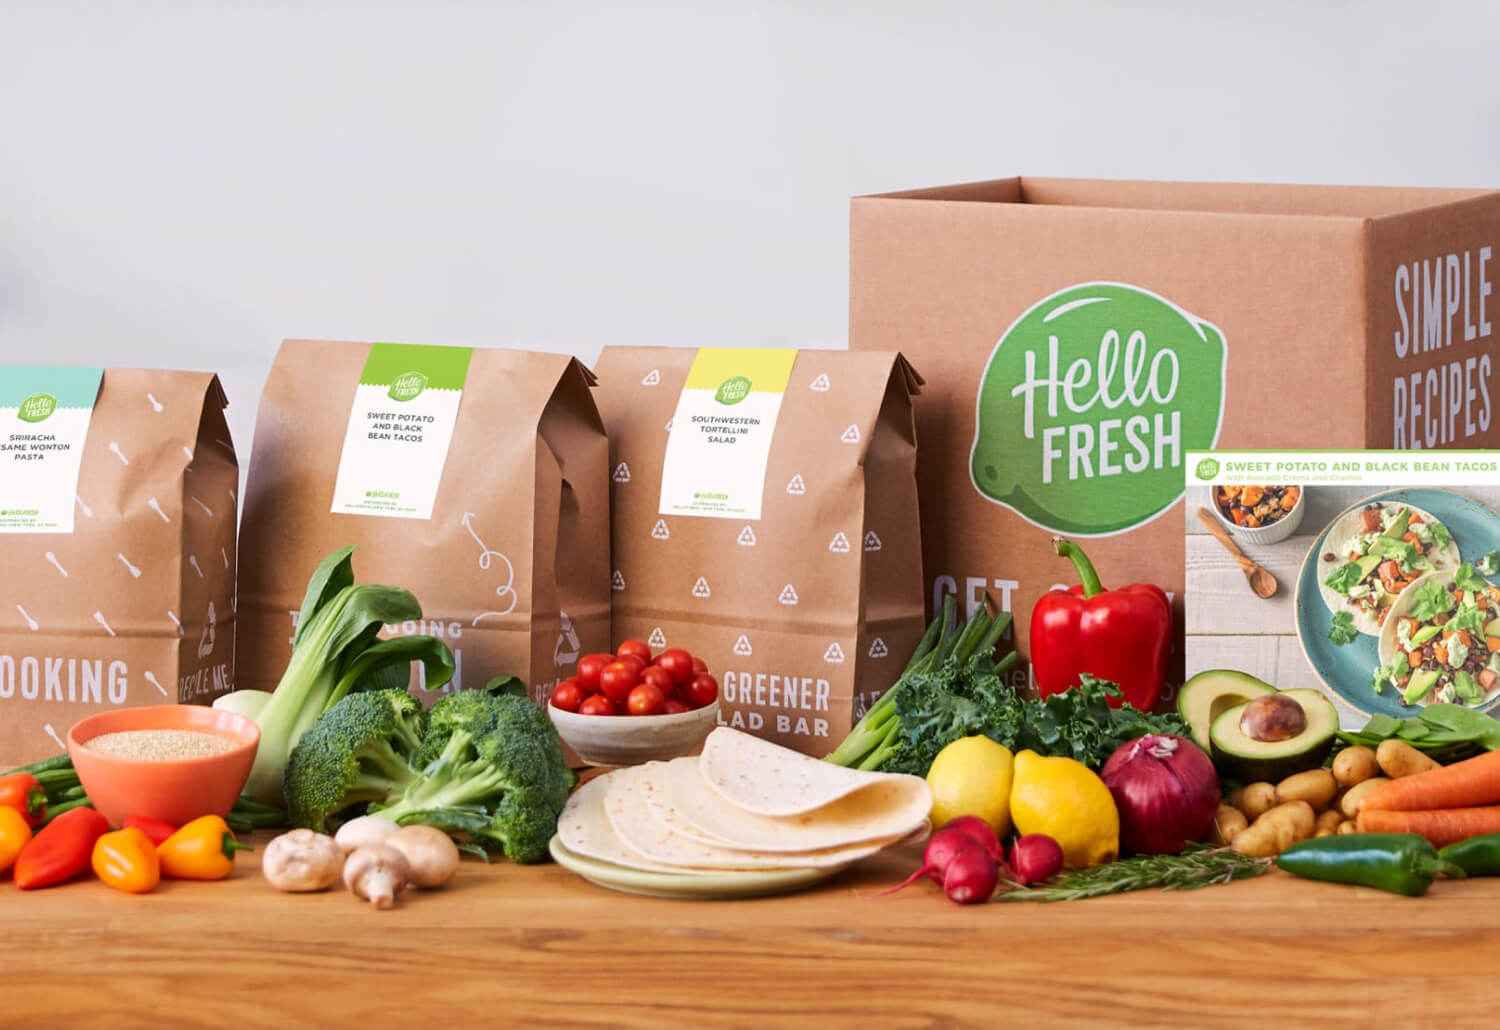 I Tried HelloFresh Instead of Online Grocery Shopping. Here's Why I'm Now Hooked!